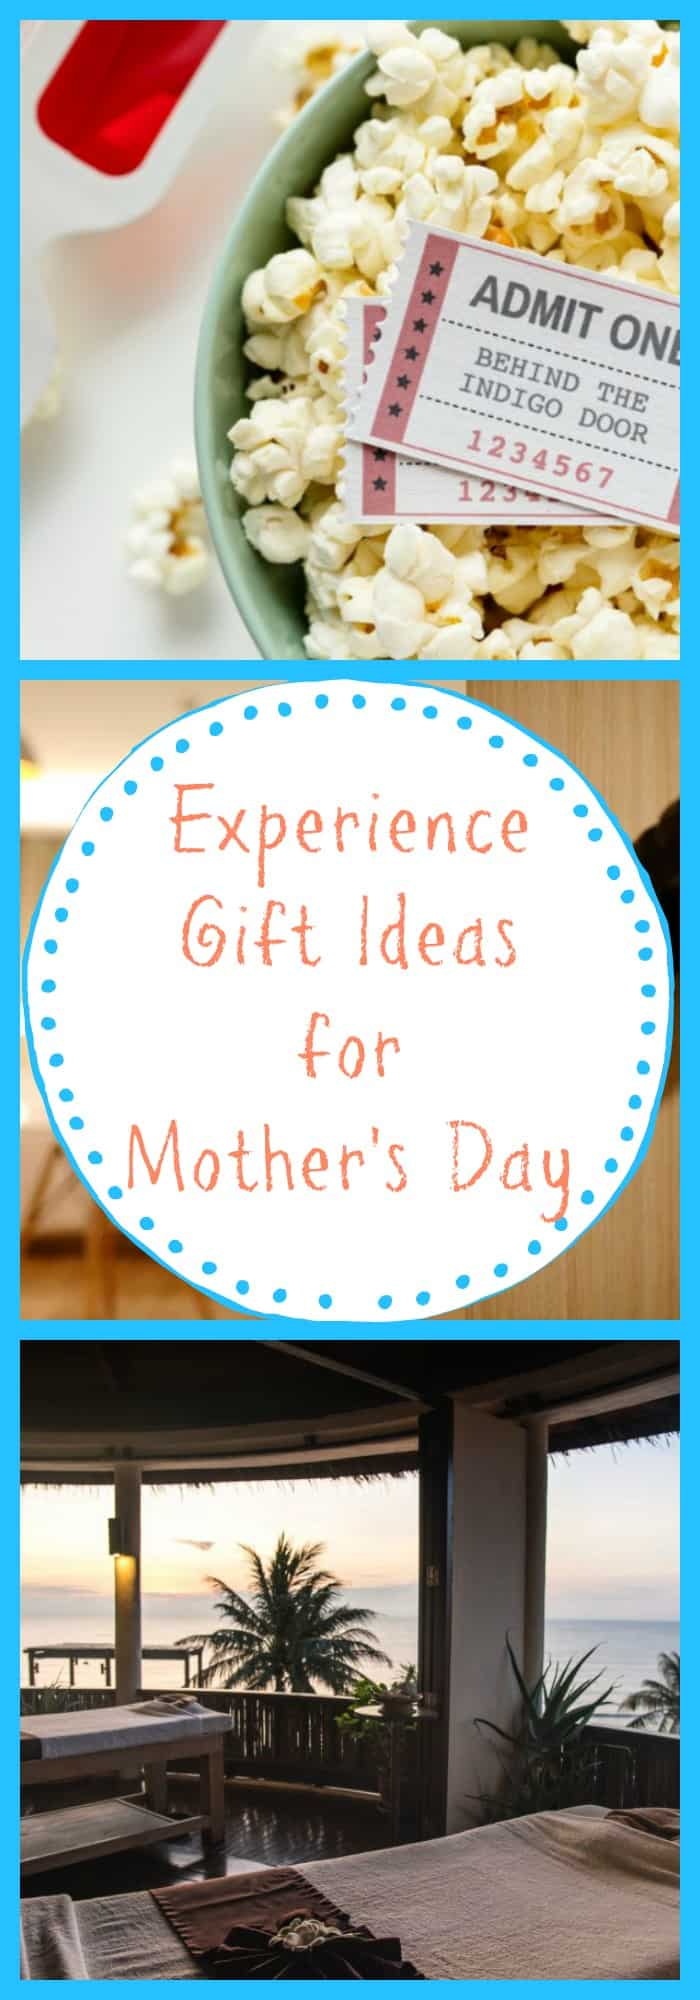 Experience Gift Ideas for Mother's Day